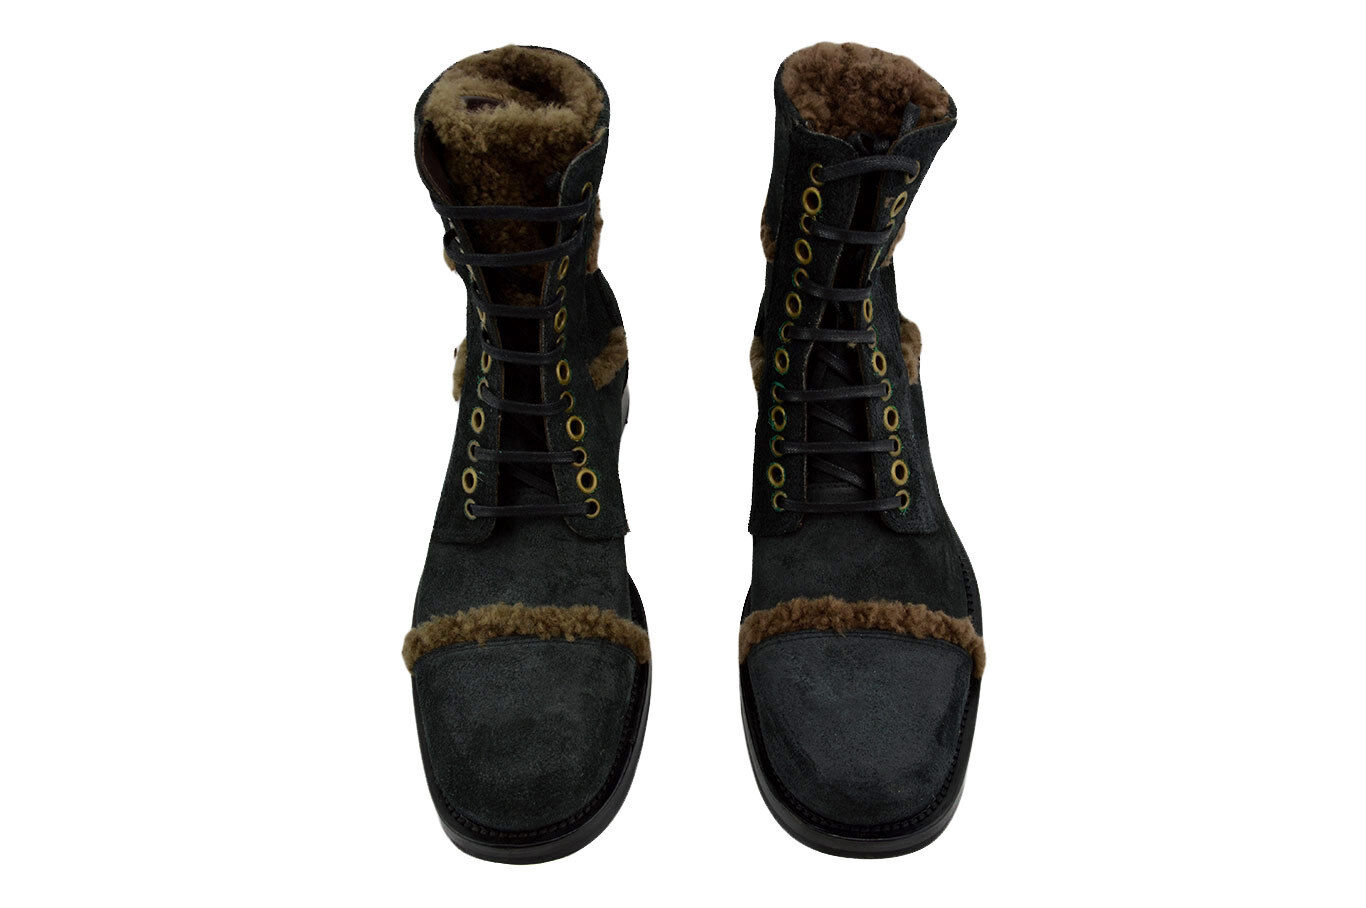 858f2201 $750 DOLCE & GABBANA Black Leather ANKLE BOOTS Fur Men Shoes LIMITED  EDITION. `